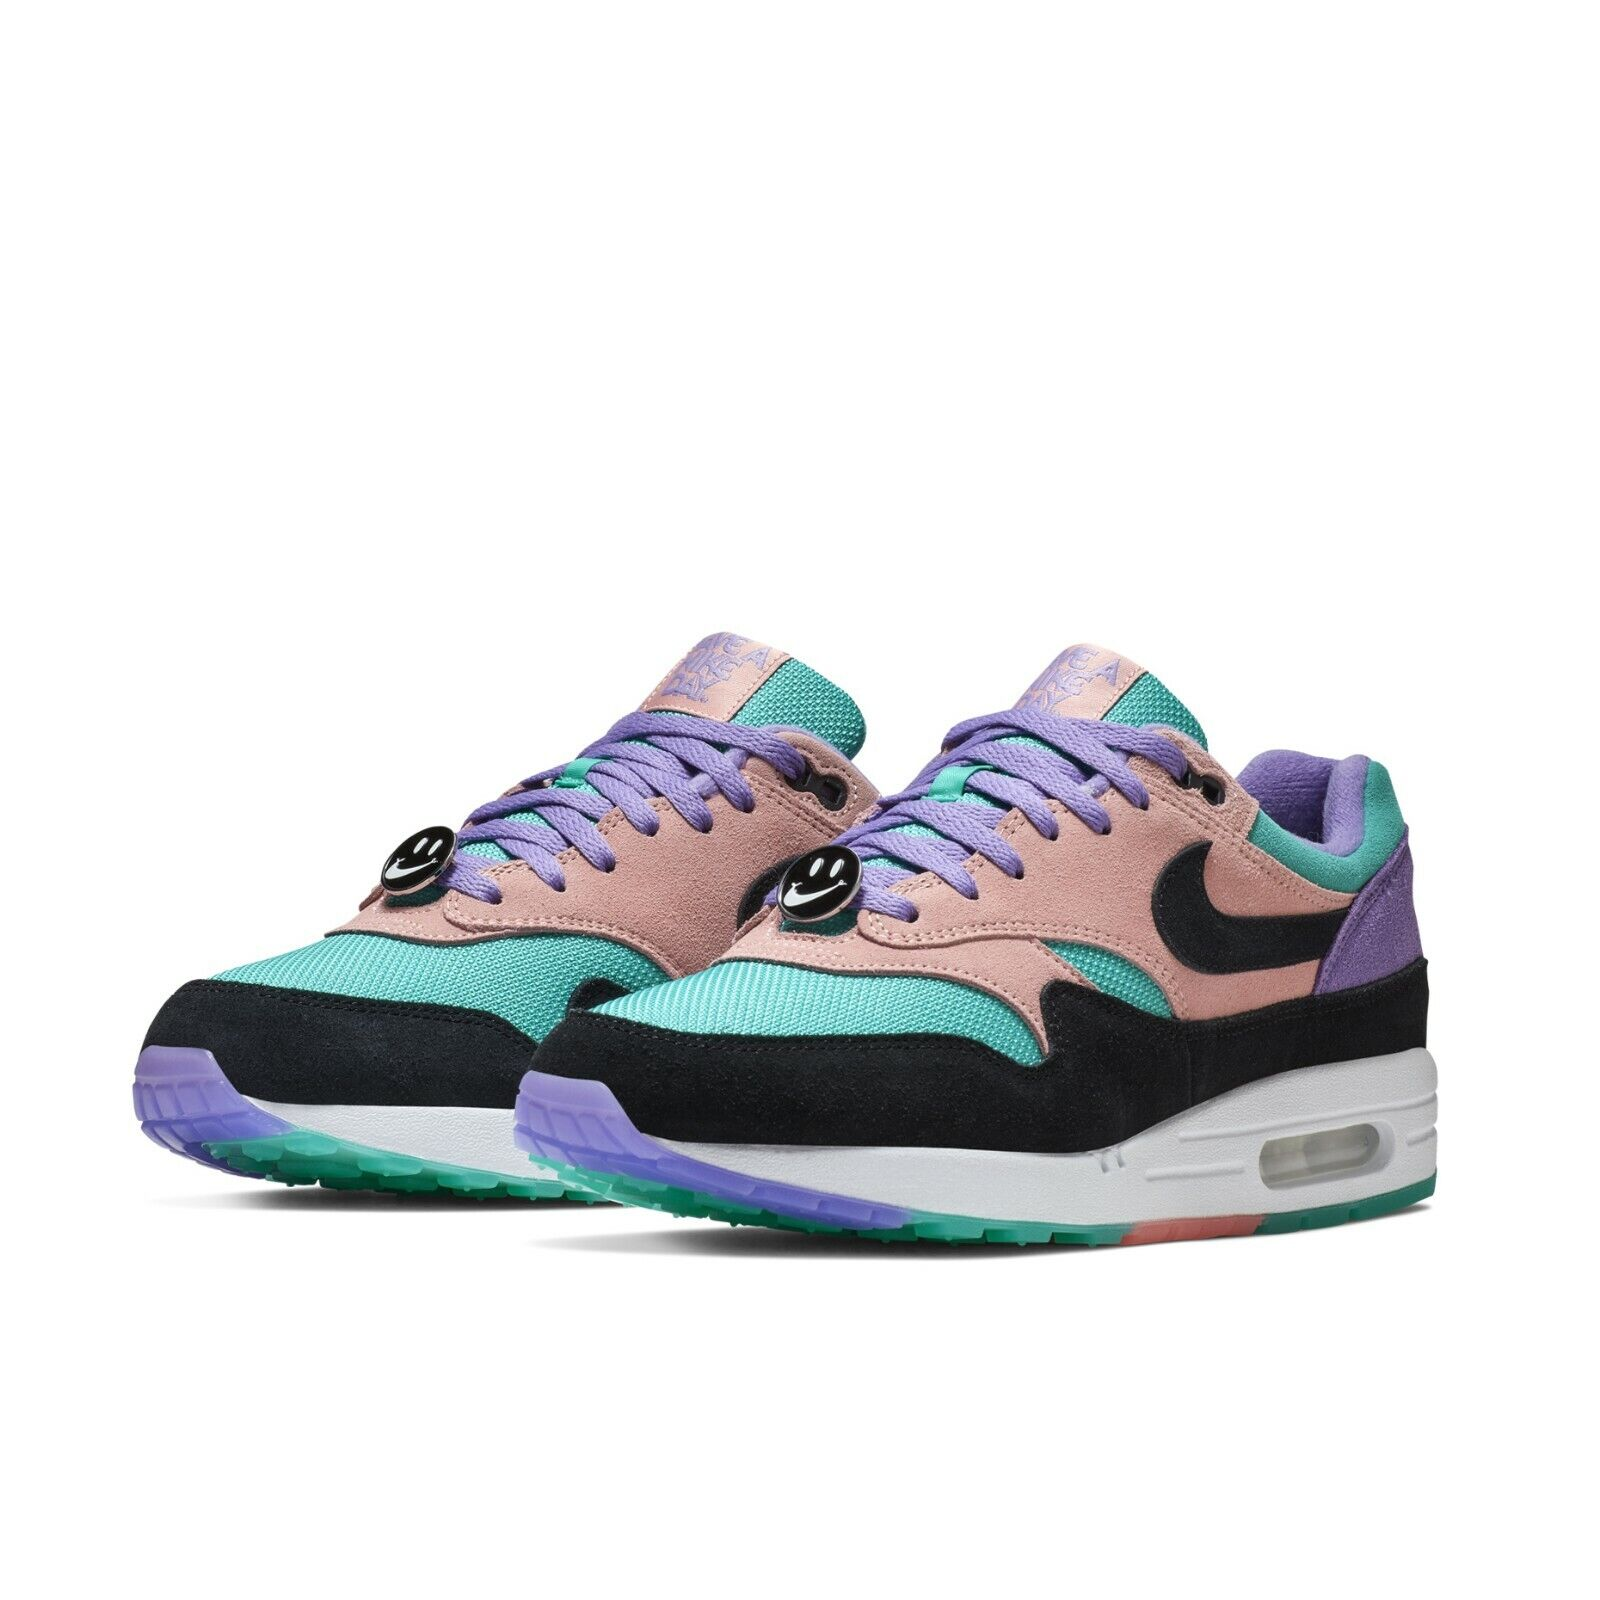 sneakers for cheap 3b6dd dd150 Nike Mens Air Max 1 ND Have A Nike Day Purple Black Coral Sneakers  BQ8929-500